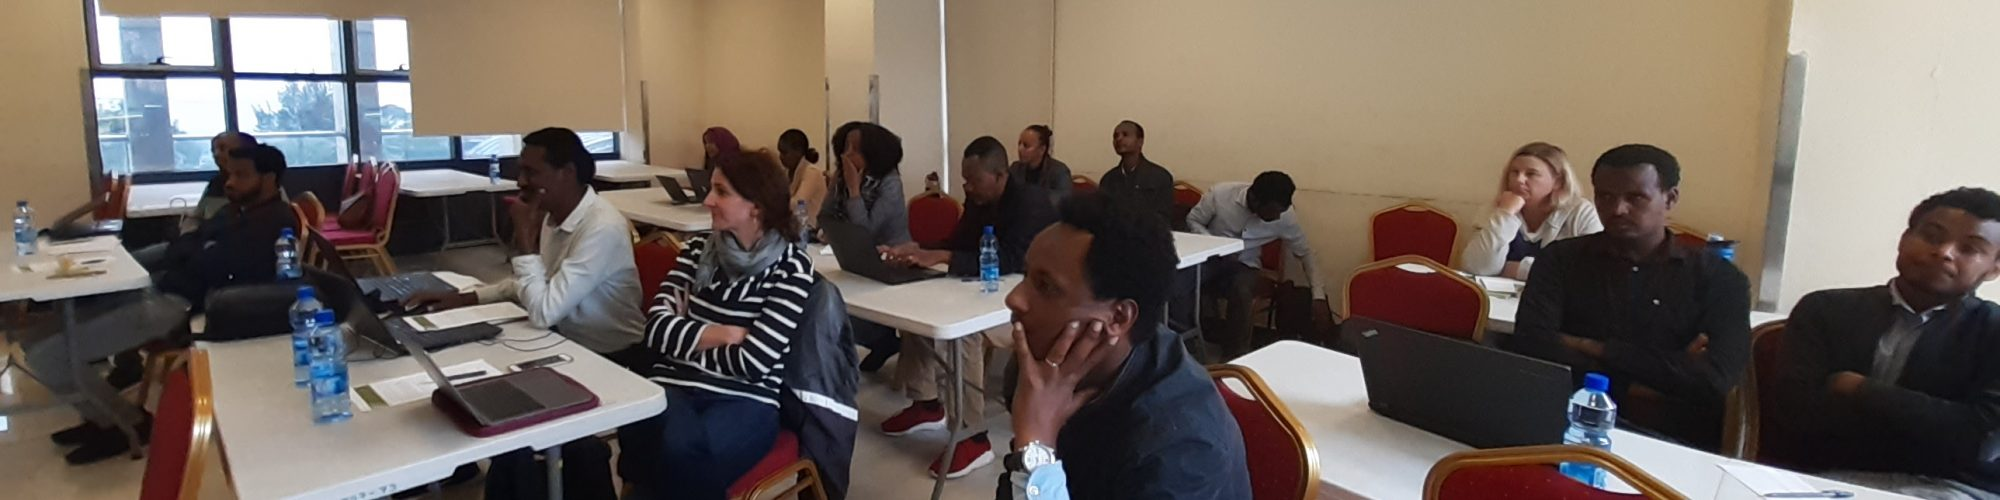 NIPN Ethiopia workshops on communicating research results